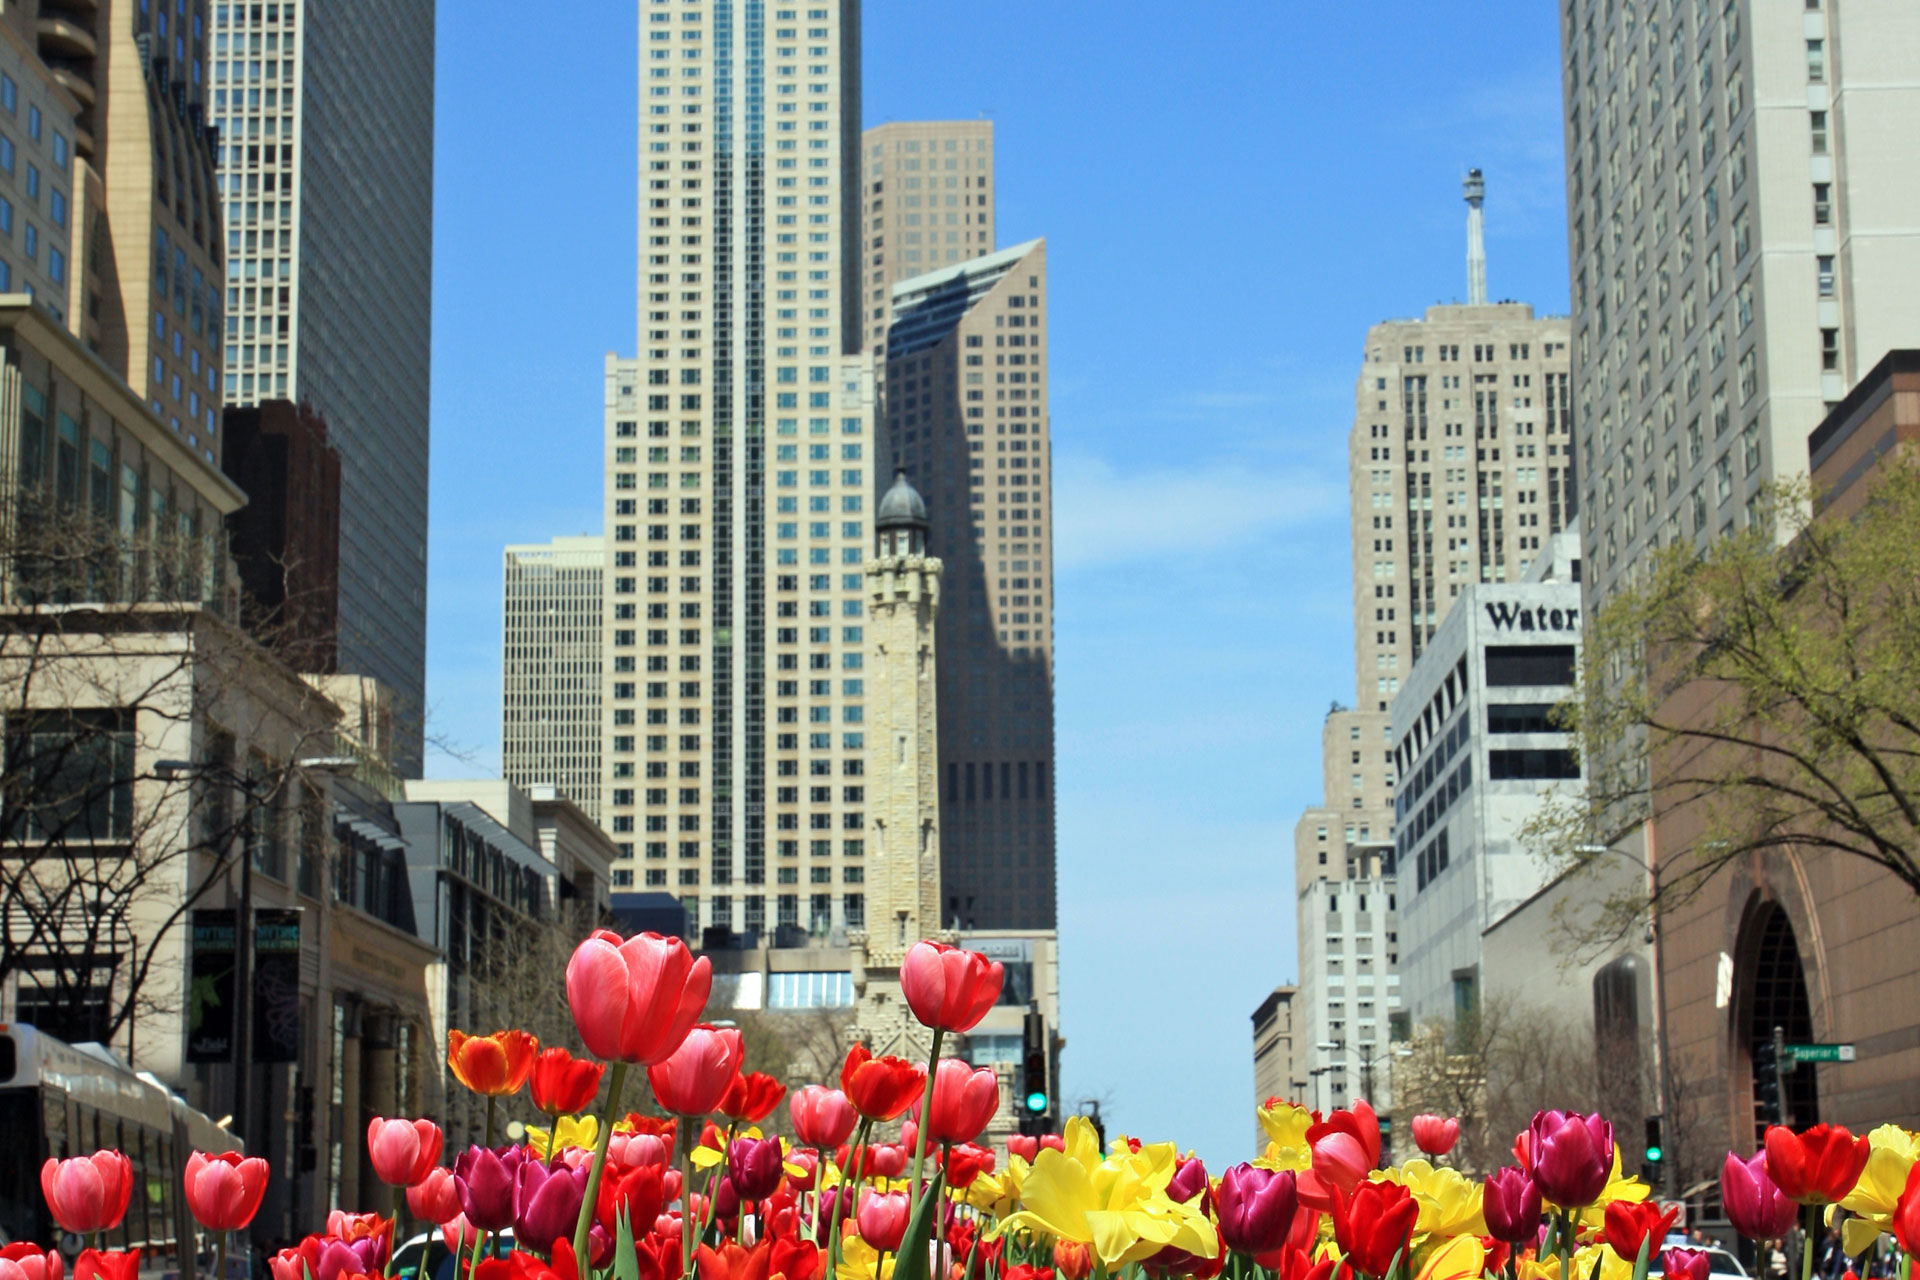 Tulips on Michigan Ave